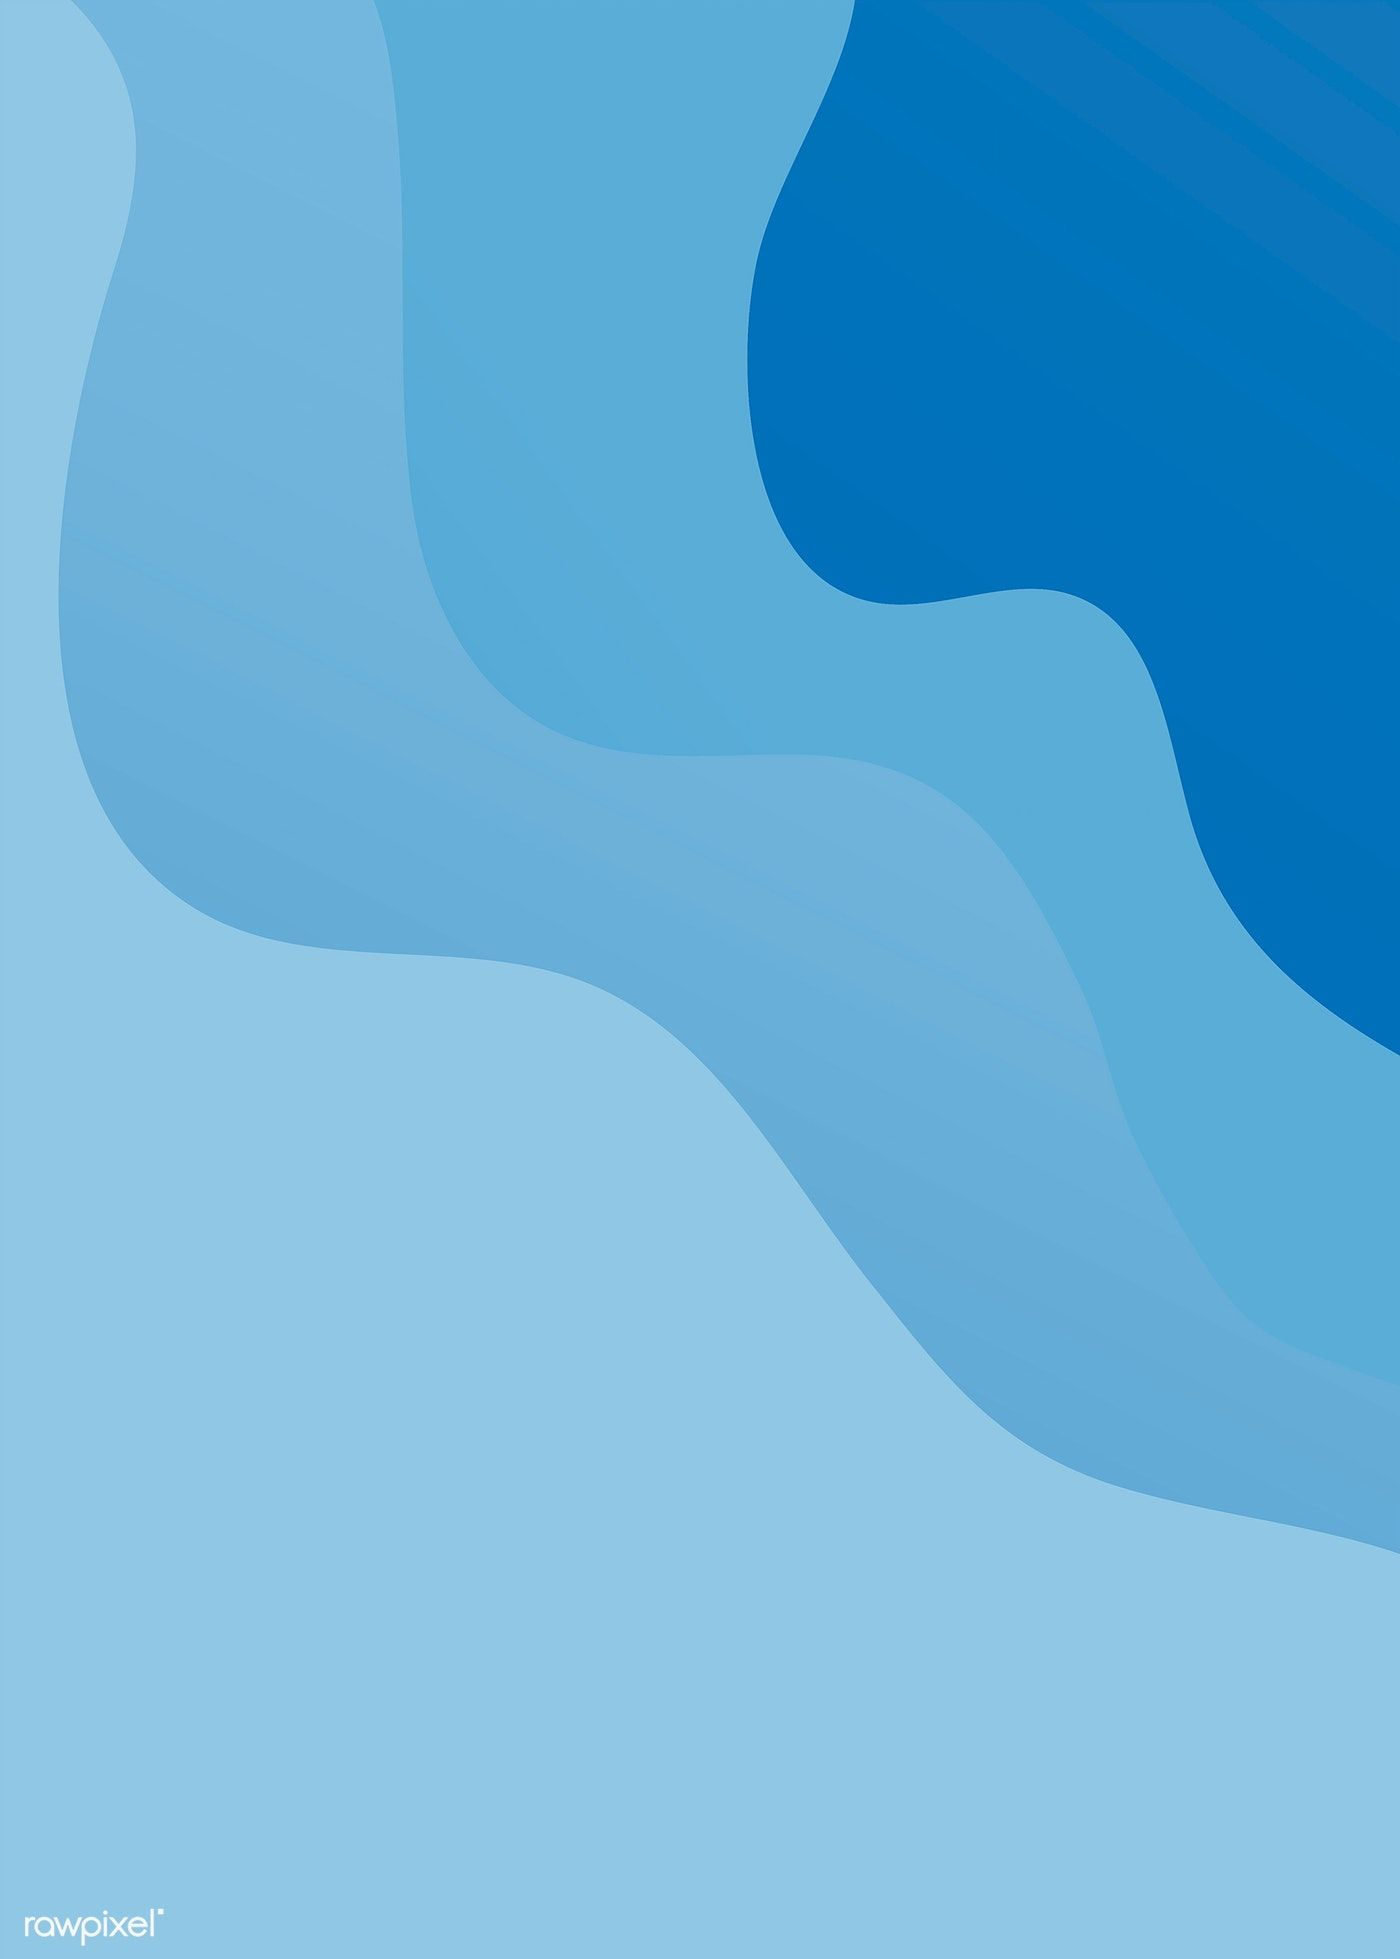 Blue Flowing Abstract Background Vector Free Image By Rawpixel